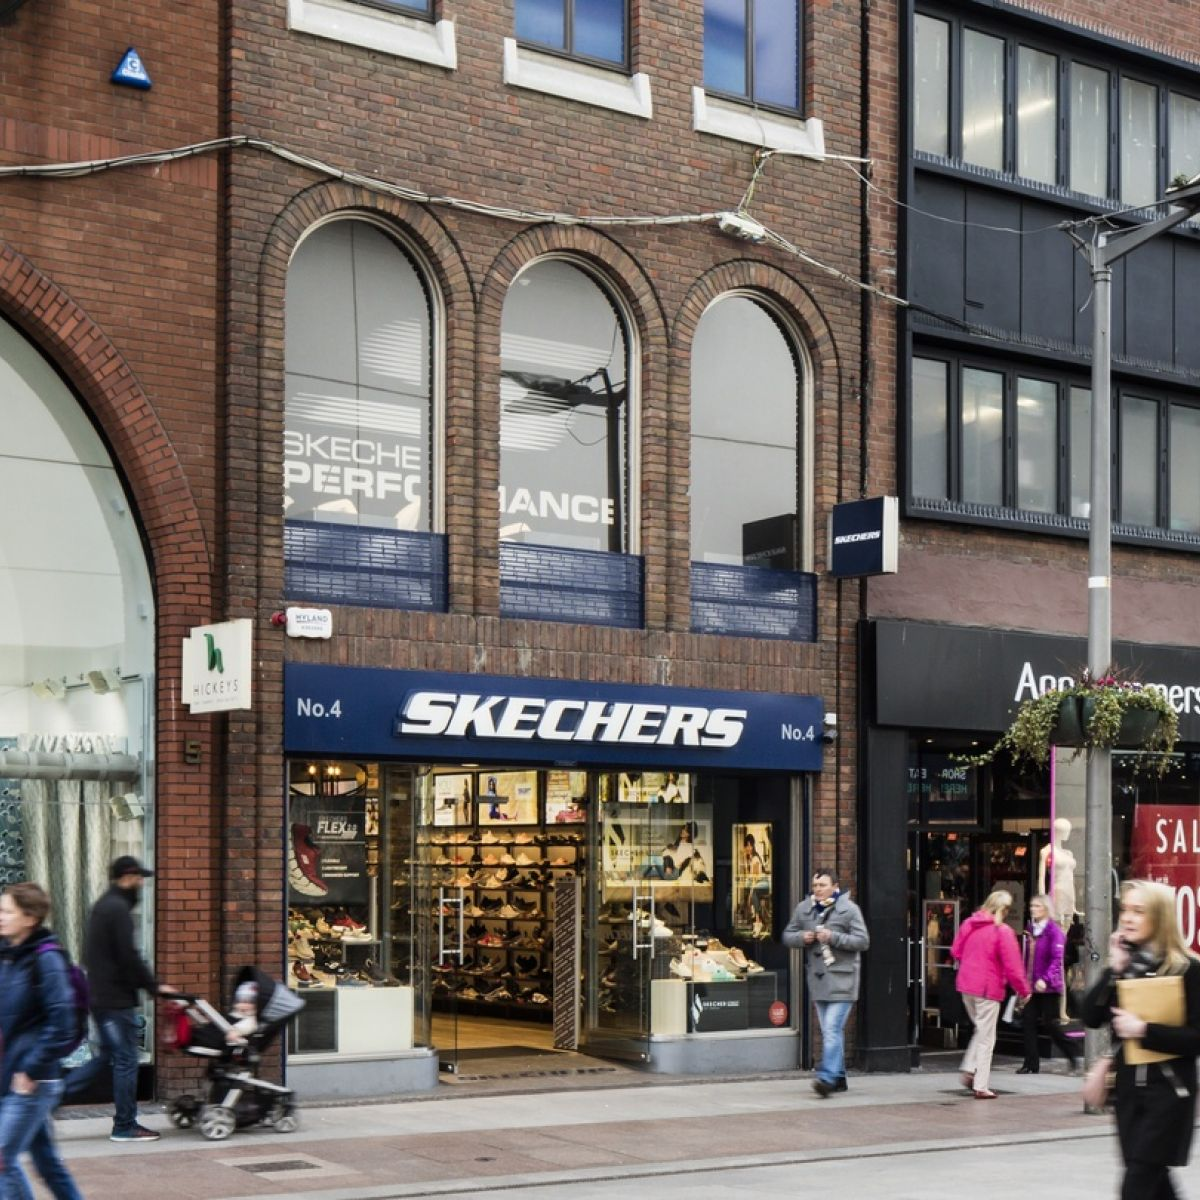 Colibrí Limo Mediana  Skechers store on Henry Street for sale for €8.35m